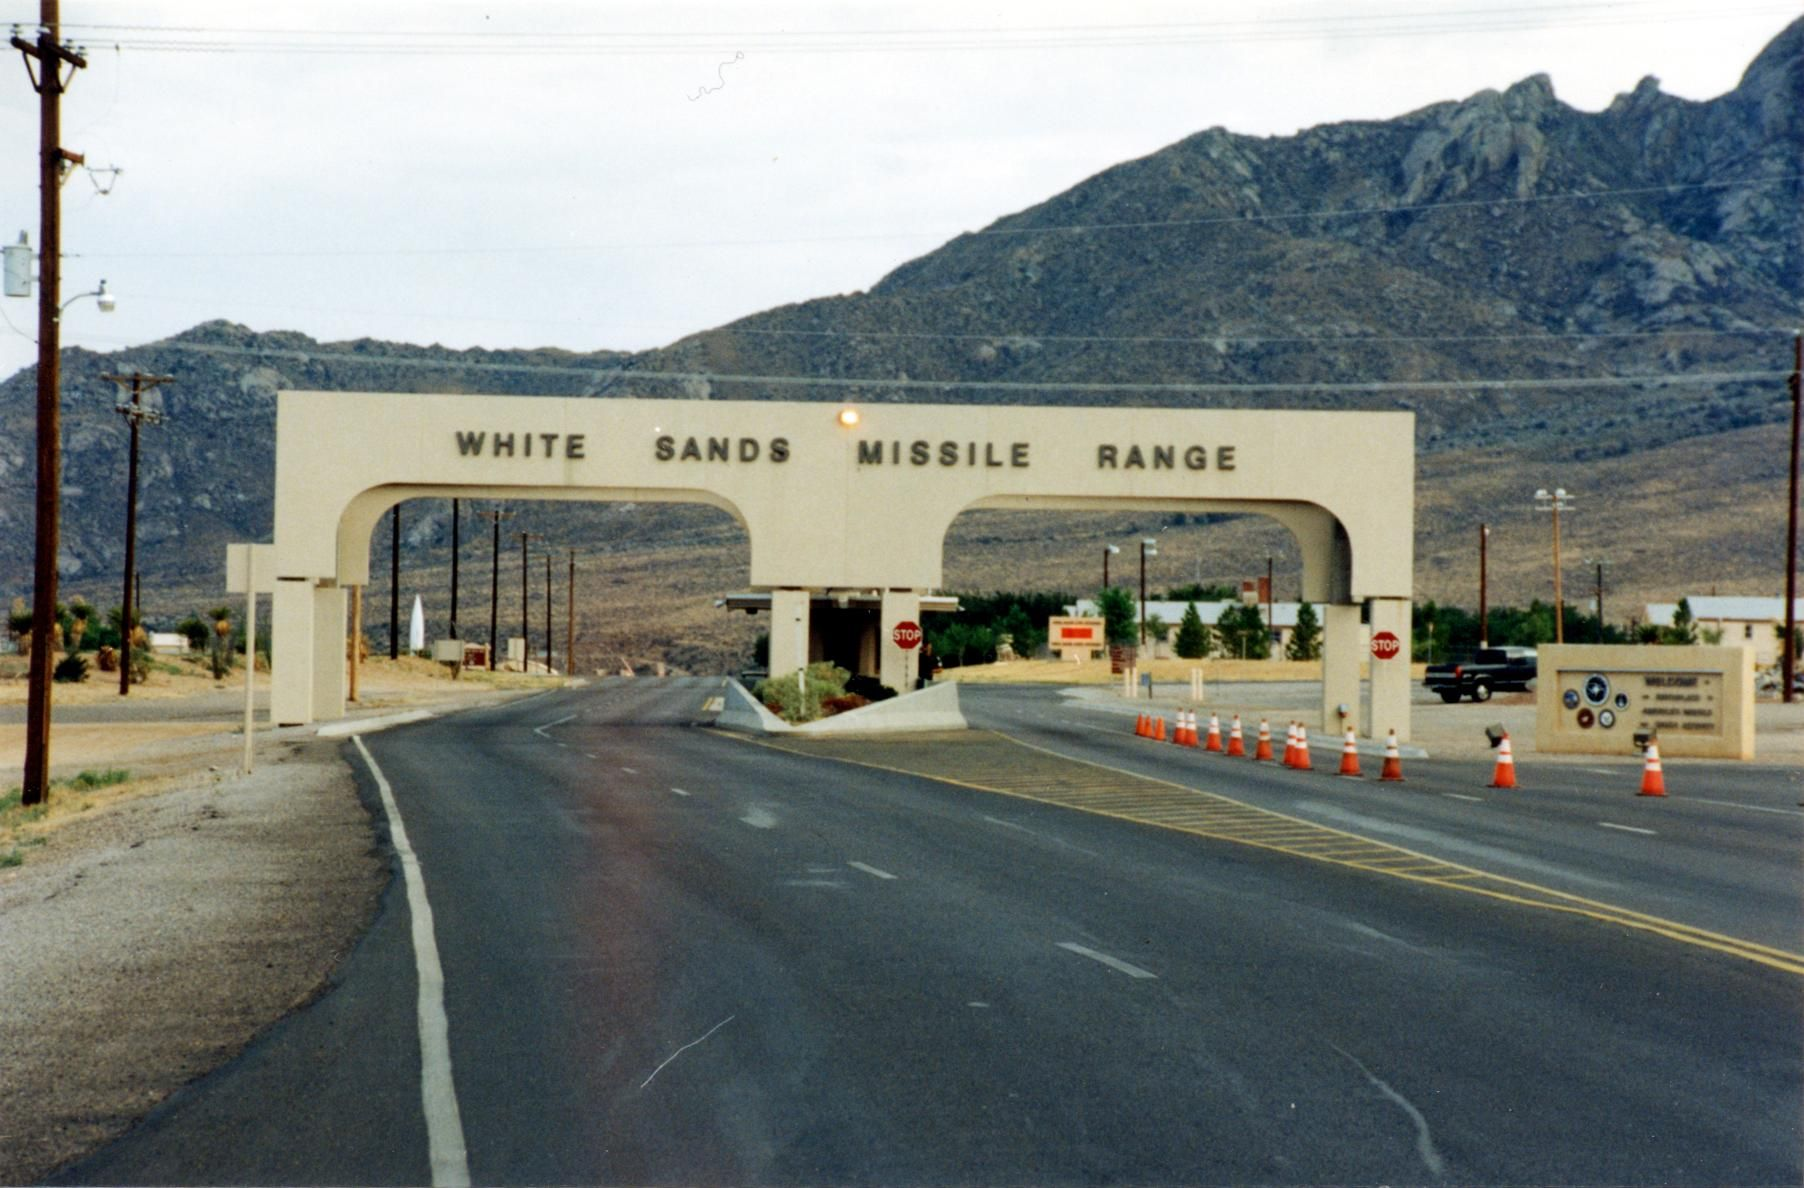 Entrance to the military base at White Sands Missile Range